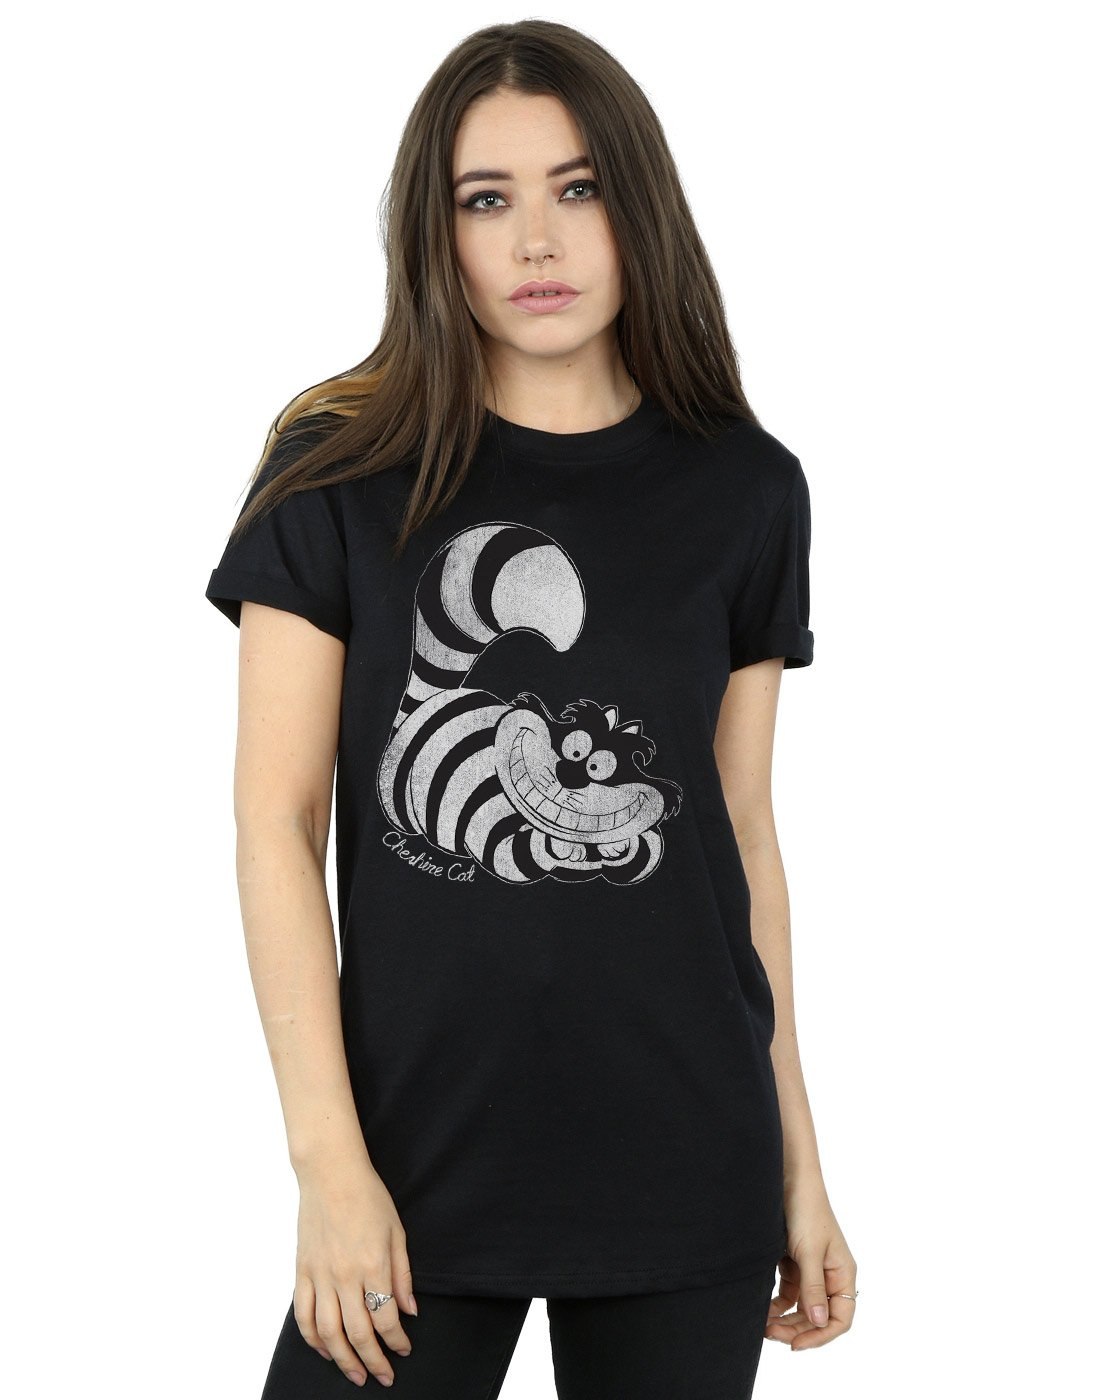 Disney Women's Alice in Wonderland Mono Cheshire Cat Boyfriend Fit T-Shirt Small Black